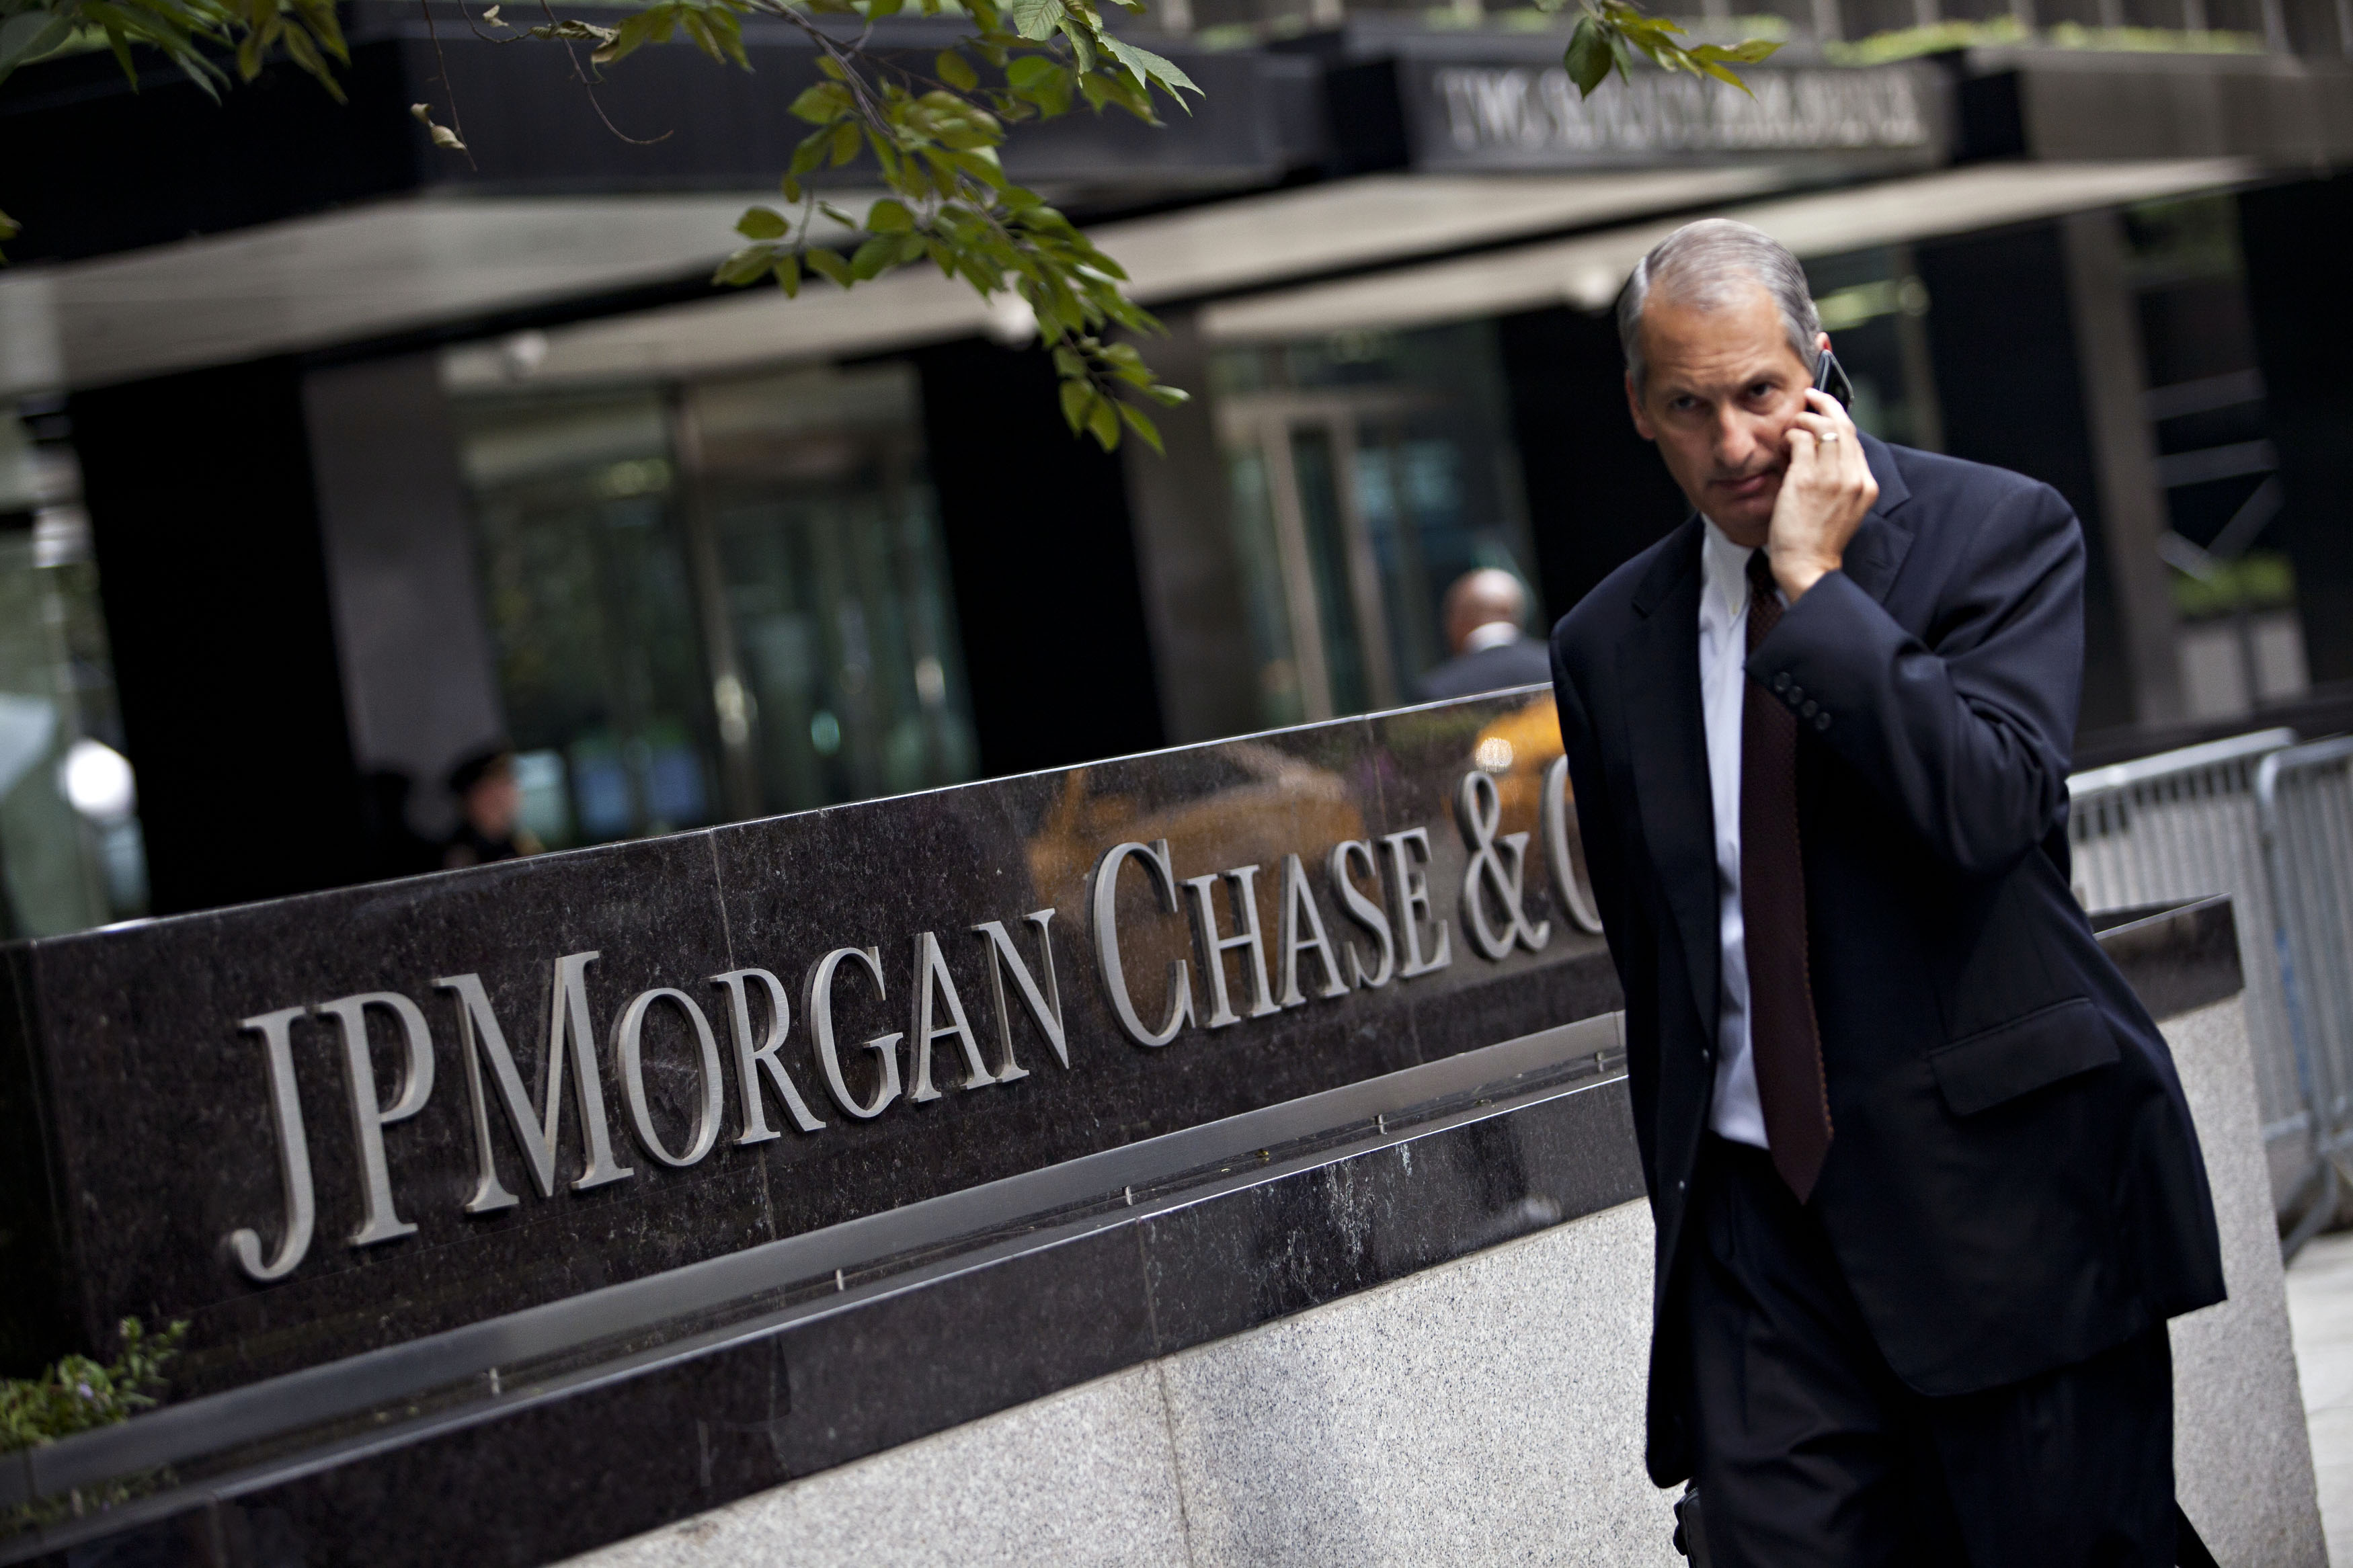 Jp Morgan Chase Cyberattack More Than 80 Million Accounts